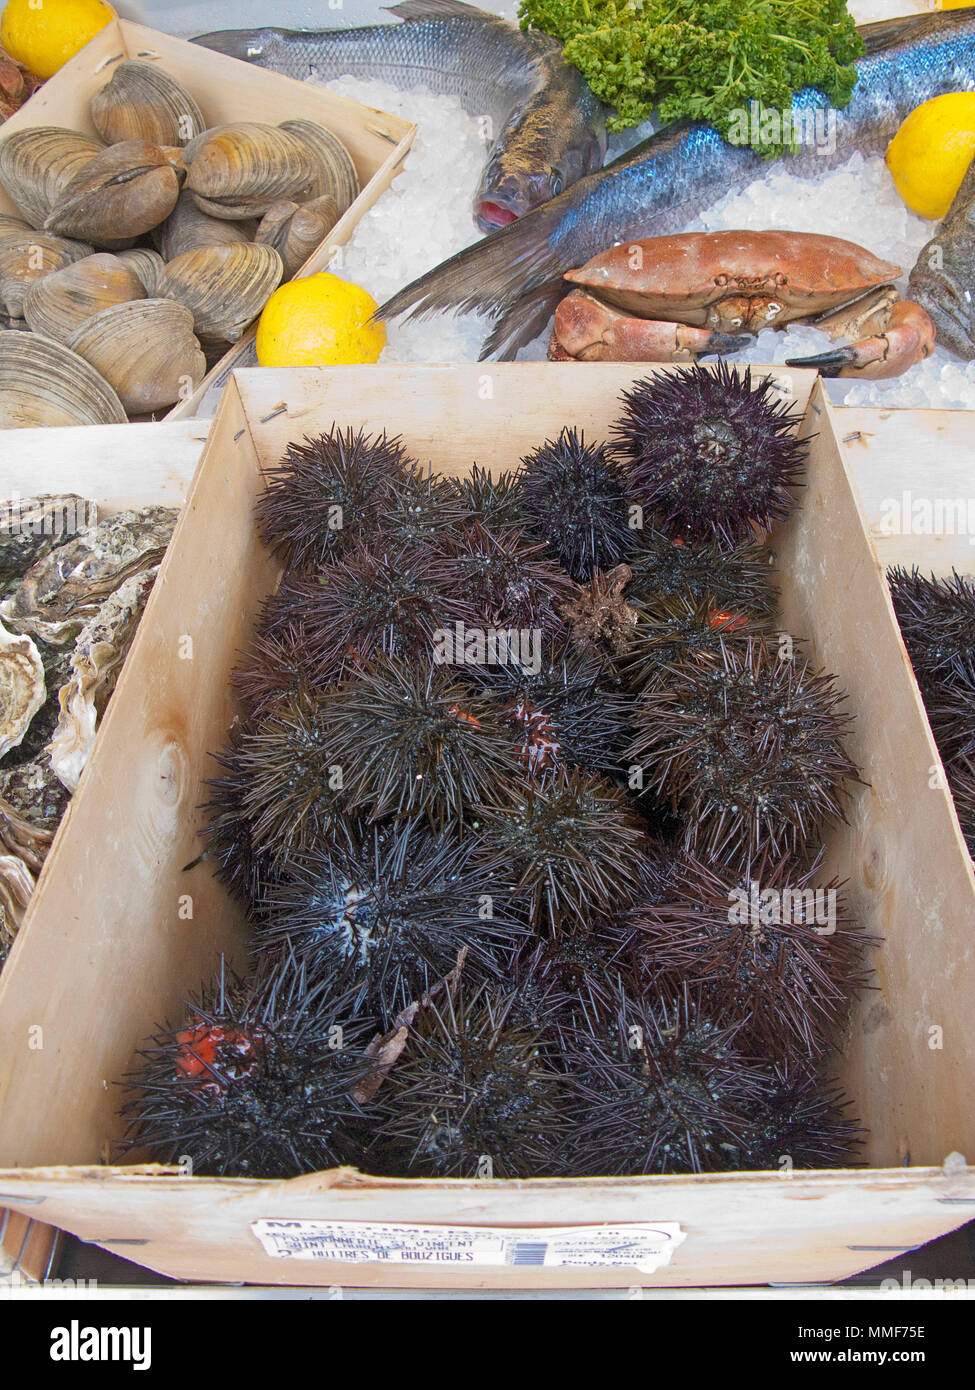 Fresh Sea urchins at a seafood restaurant at place Cours Saleya, Nice, Côte d'Azur, Alpes-Maritimes, South France, France, Europe - Stock Image